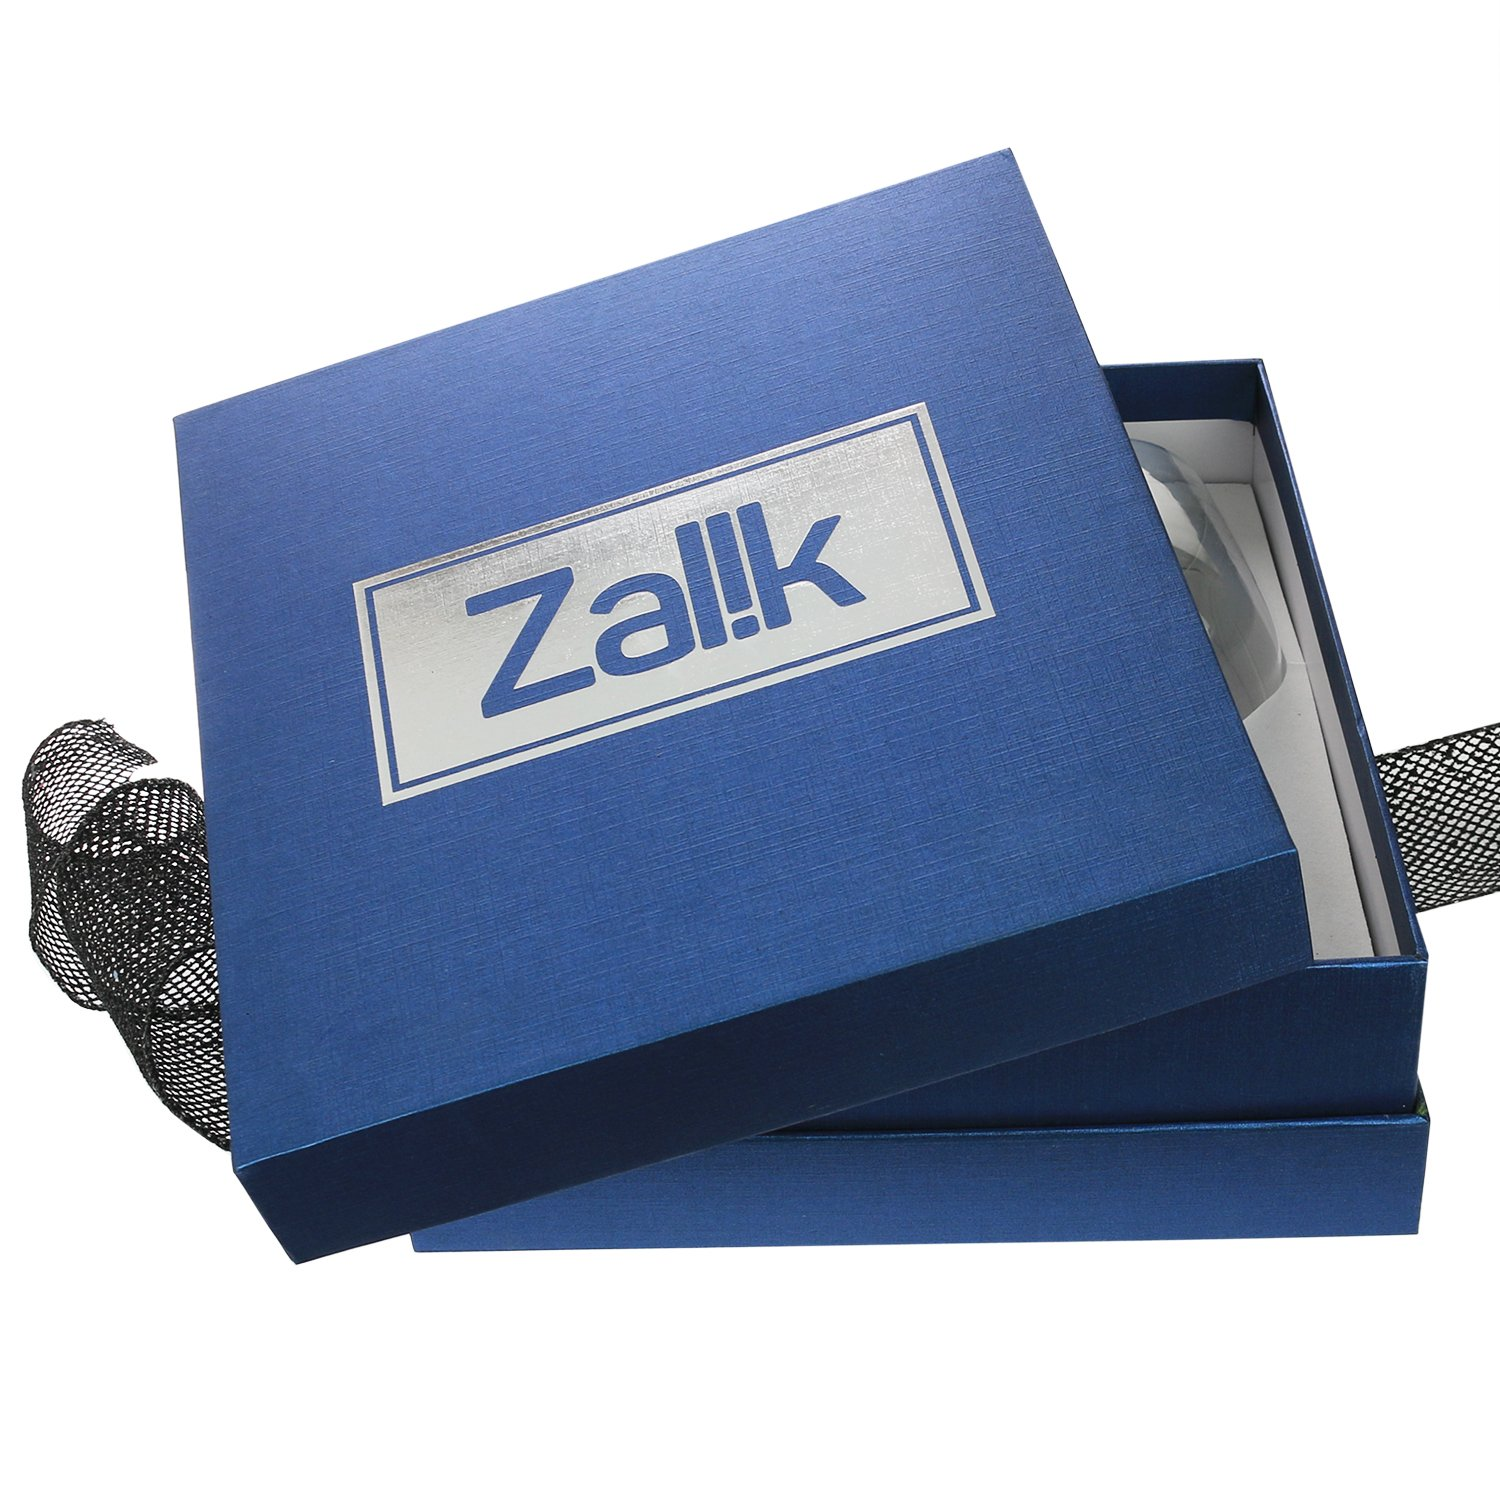 Zalik Wine Glasses Gift Set - Set Of 2 Wine Glasses, Wine Opener, Wine Stopper And Wine Aerator Pourer For Enhanced Flavor - Perfect Gift For Every Occasion - Wine Accessories - Elegant Gift Box by Zalik (Image #7)